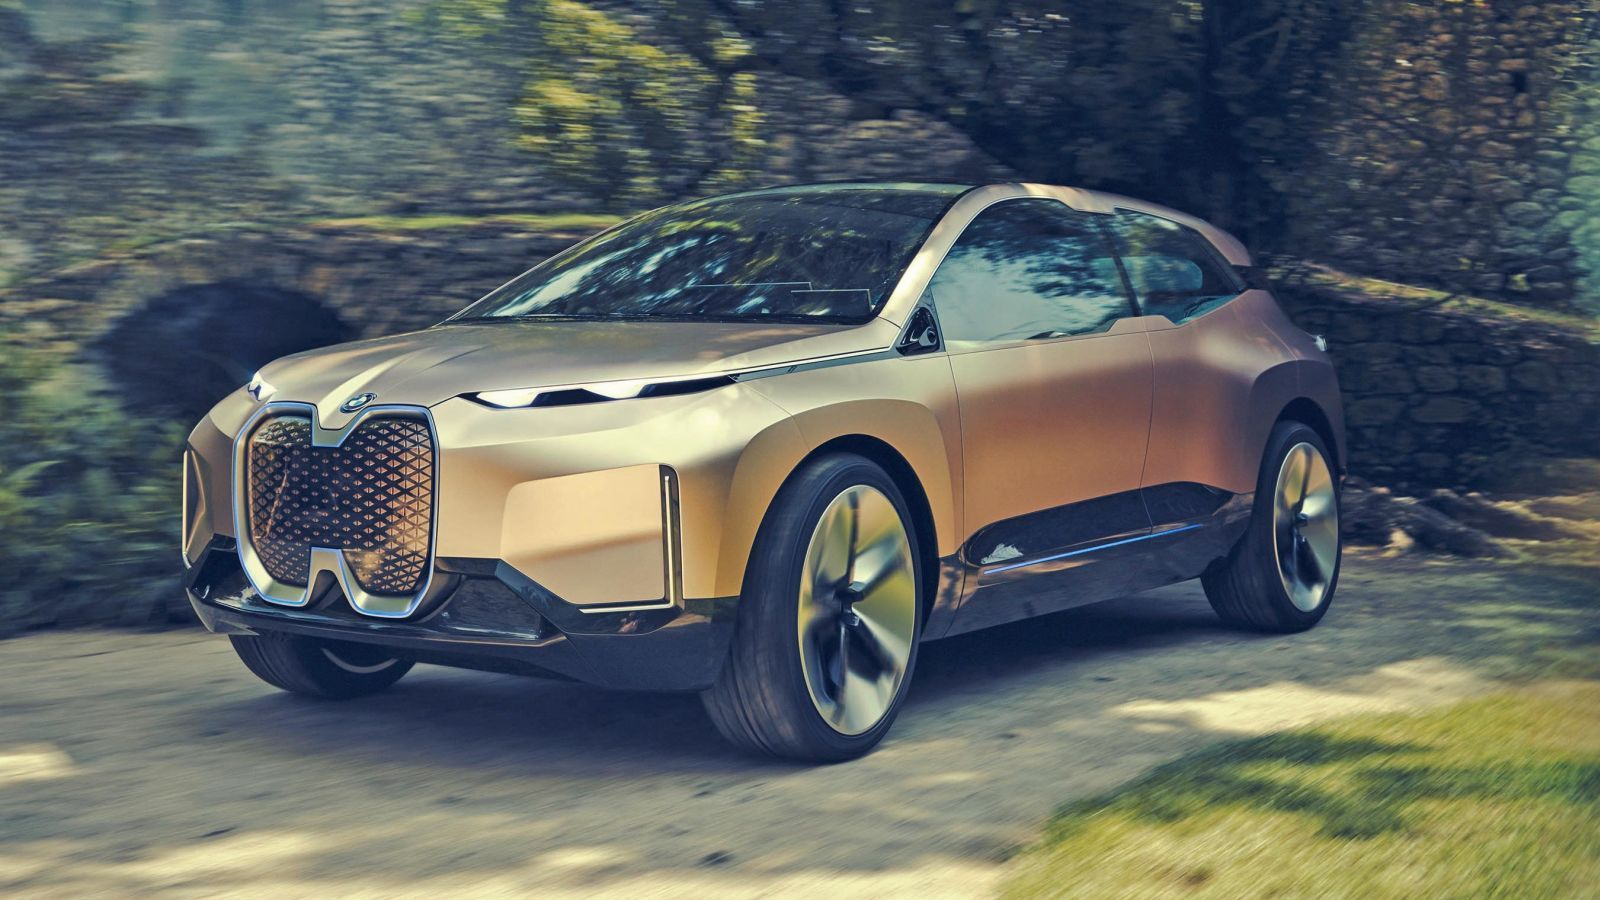 The Bmw Vision Inext Concept Is S Funky Autonomous Electric Crossover Future